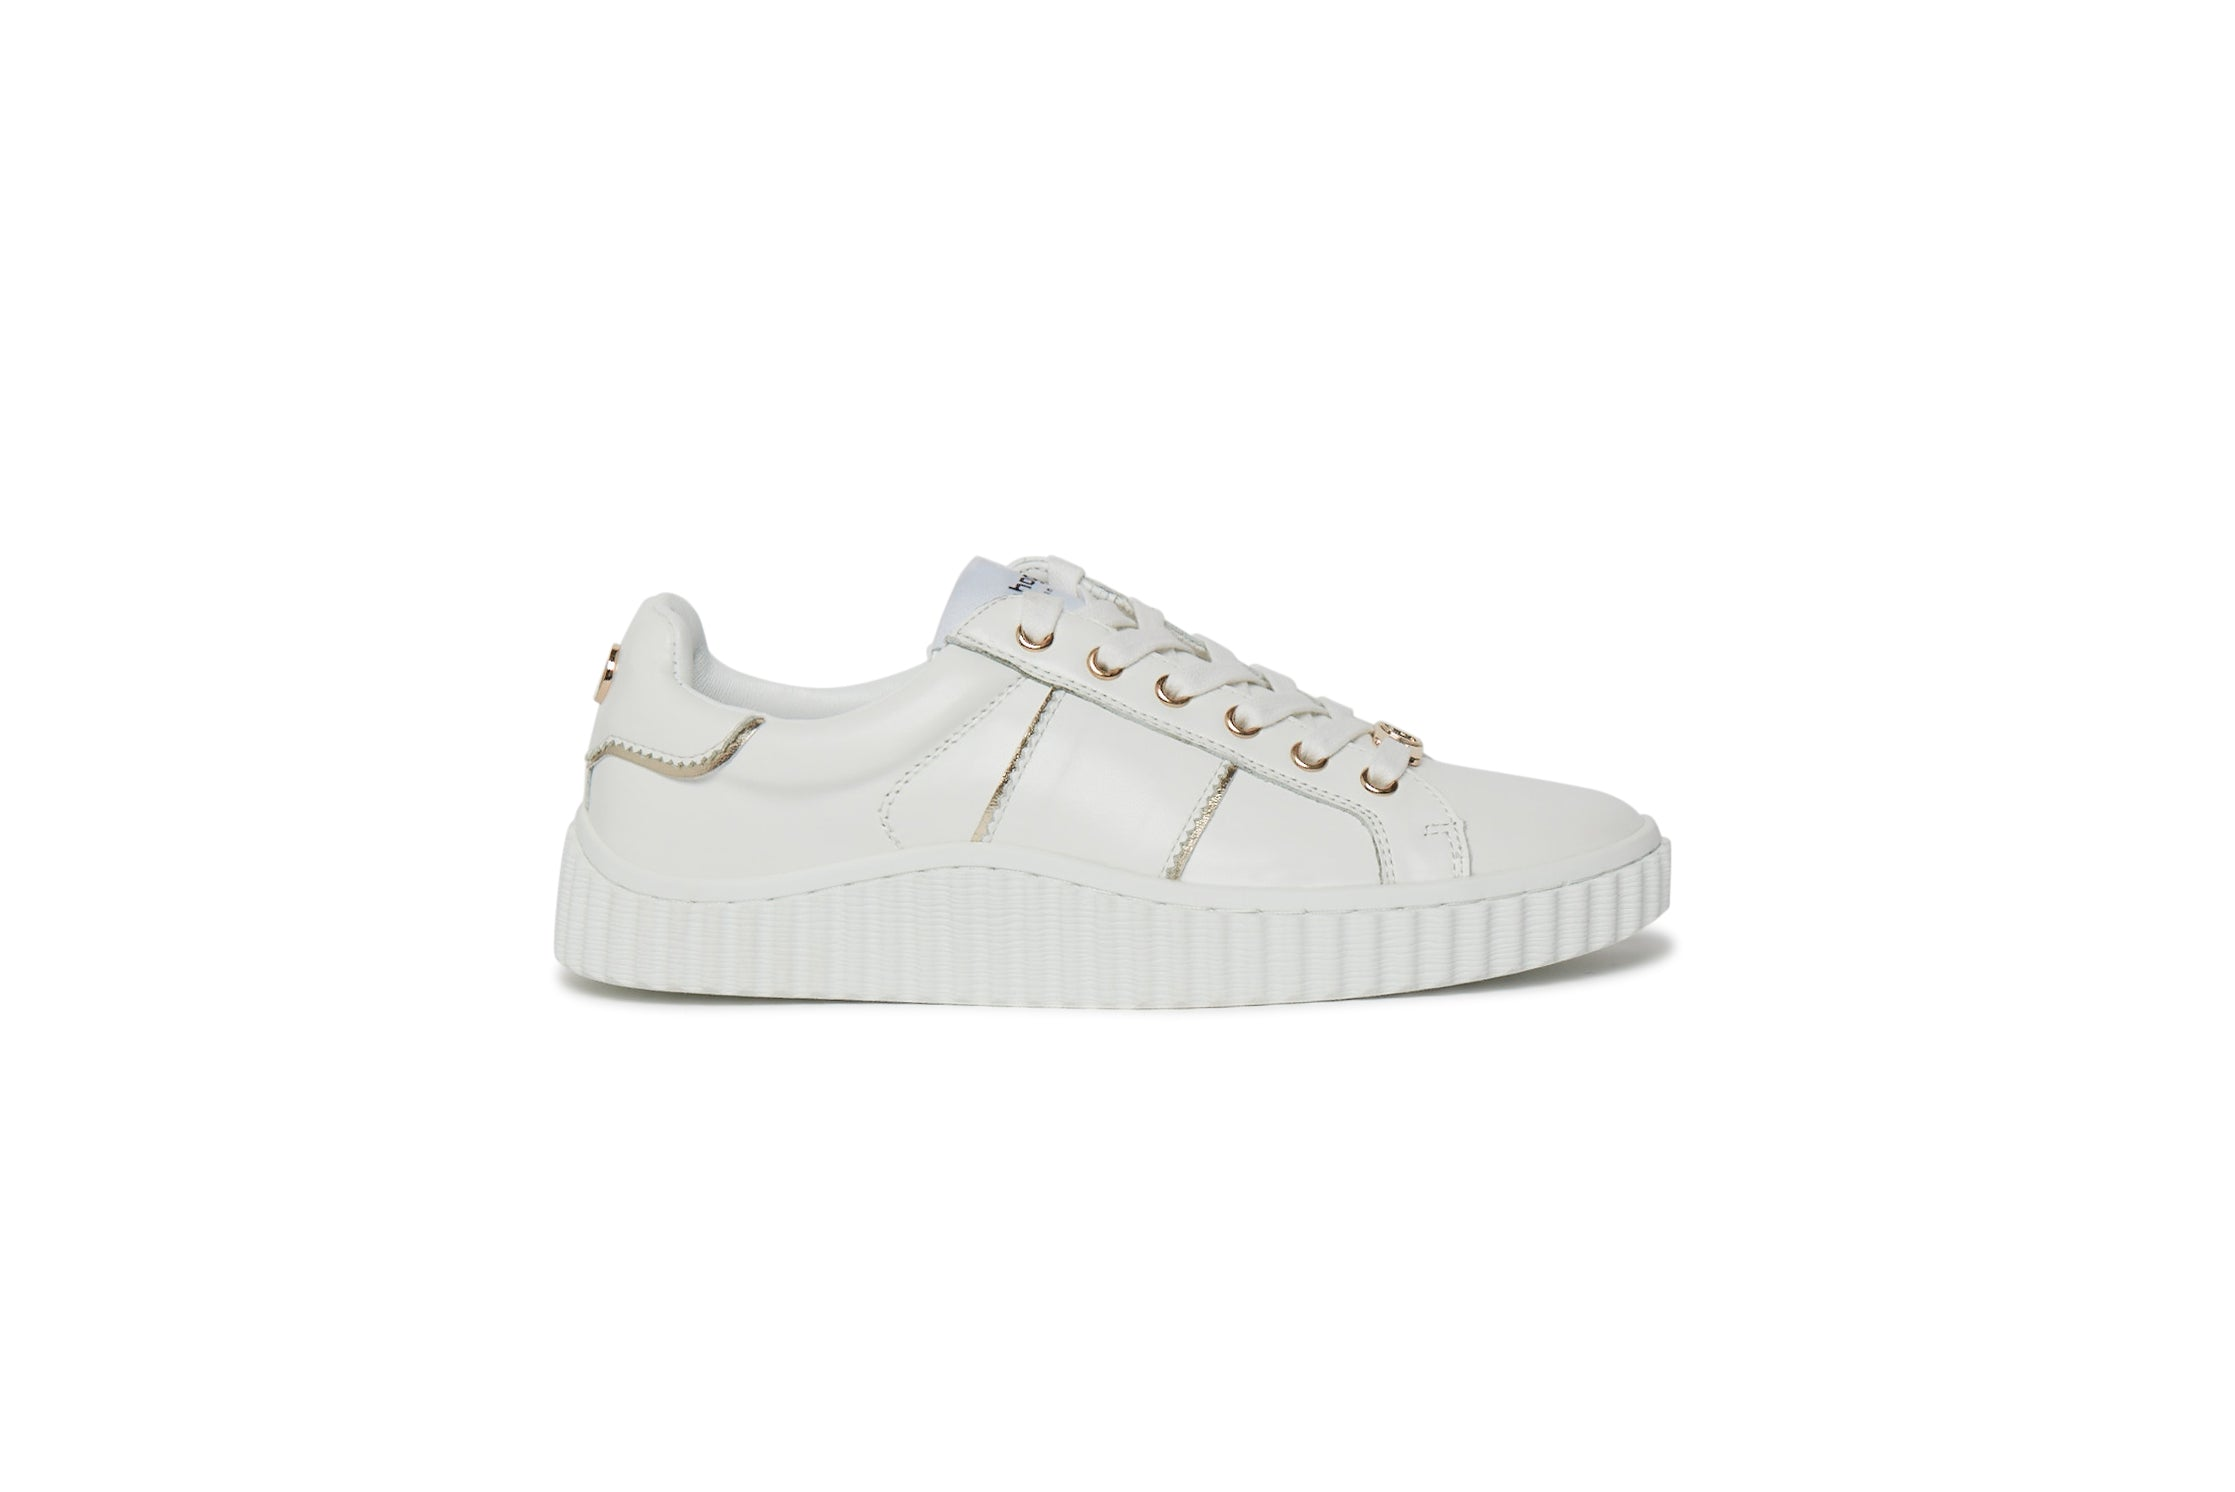 Phillip Hog Mila Leather Trainer for Ladies in White / Gold